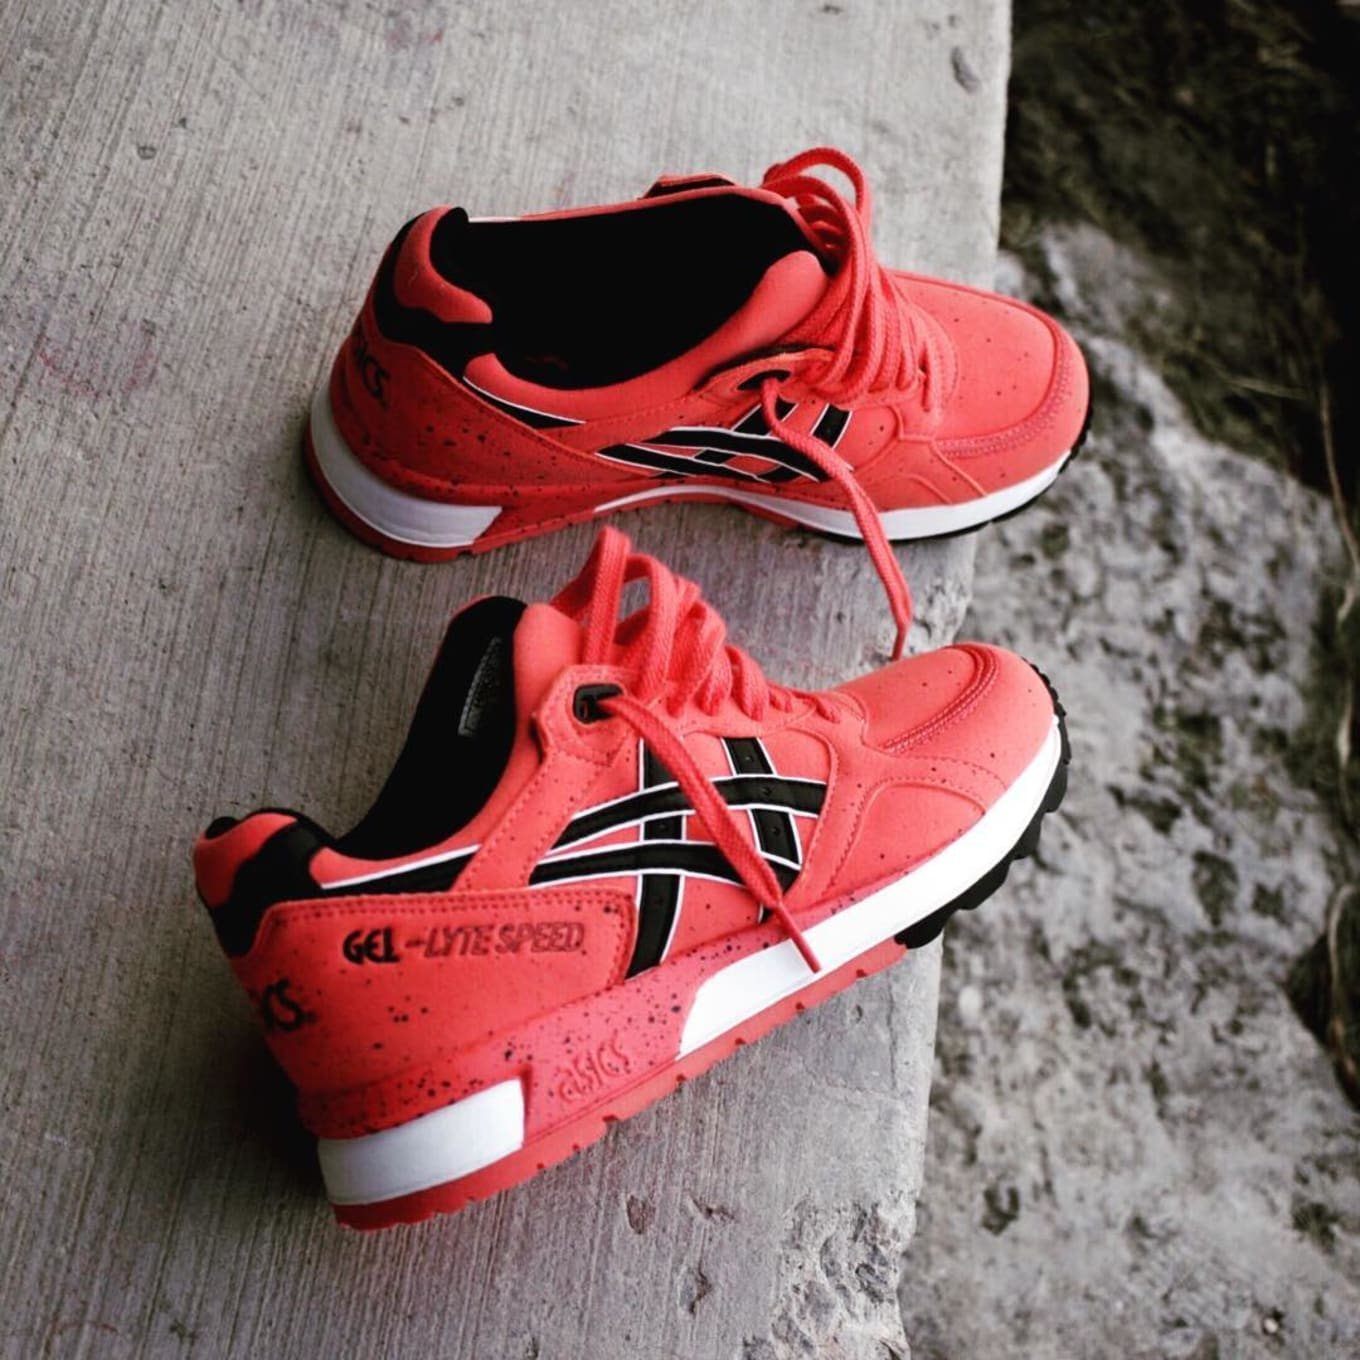 There s No Overlooking This Ultra-Bright Asics Gel-Lyte Speed. The runner  is now available in